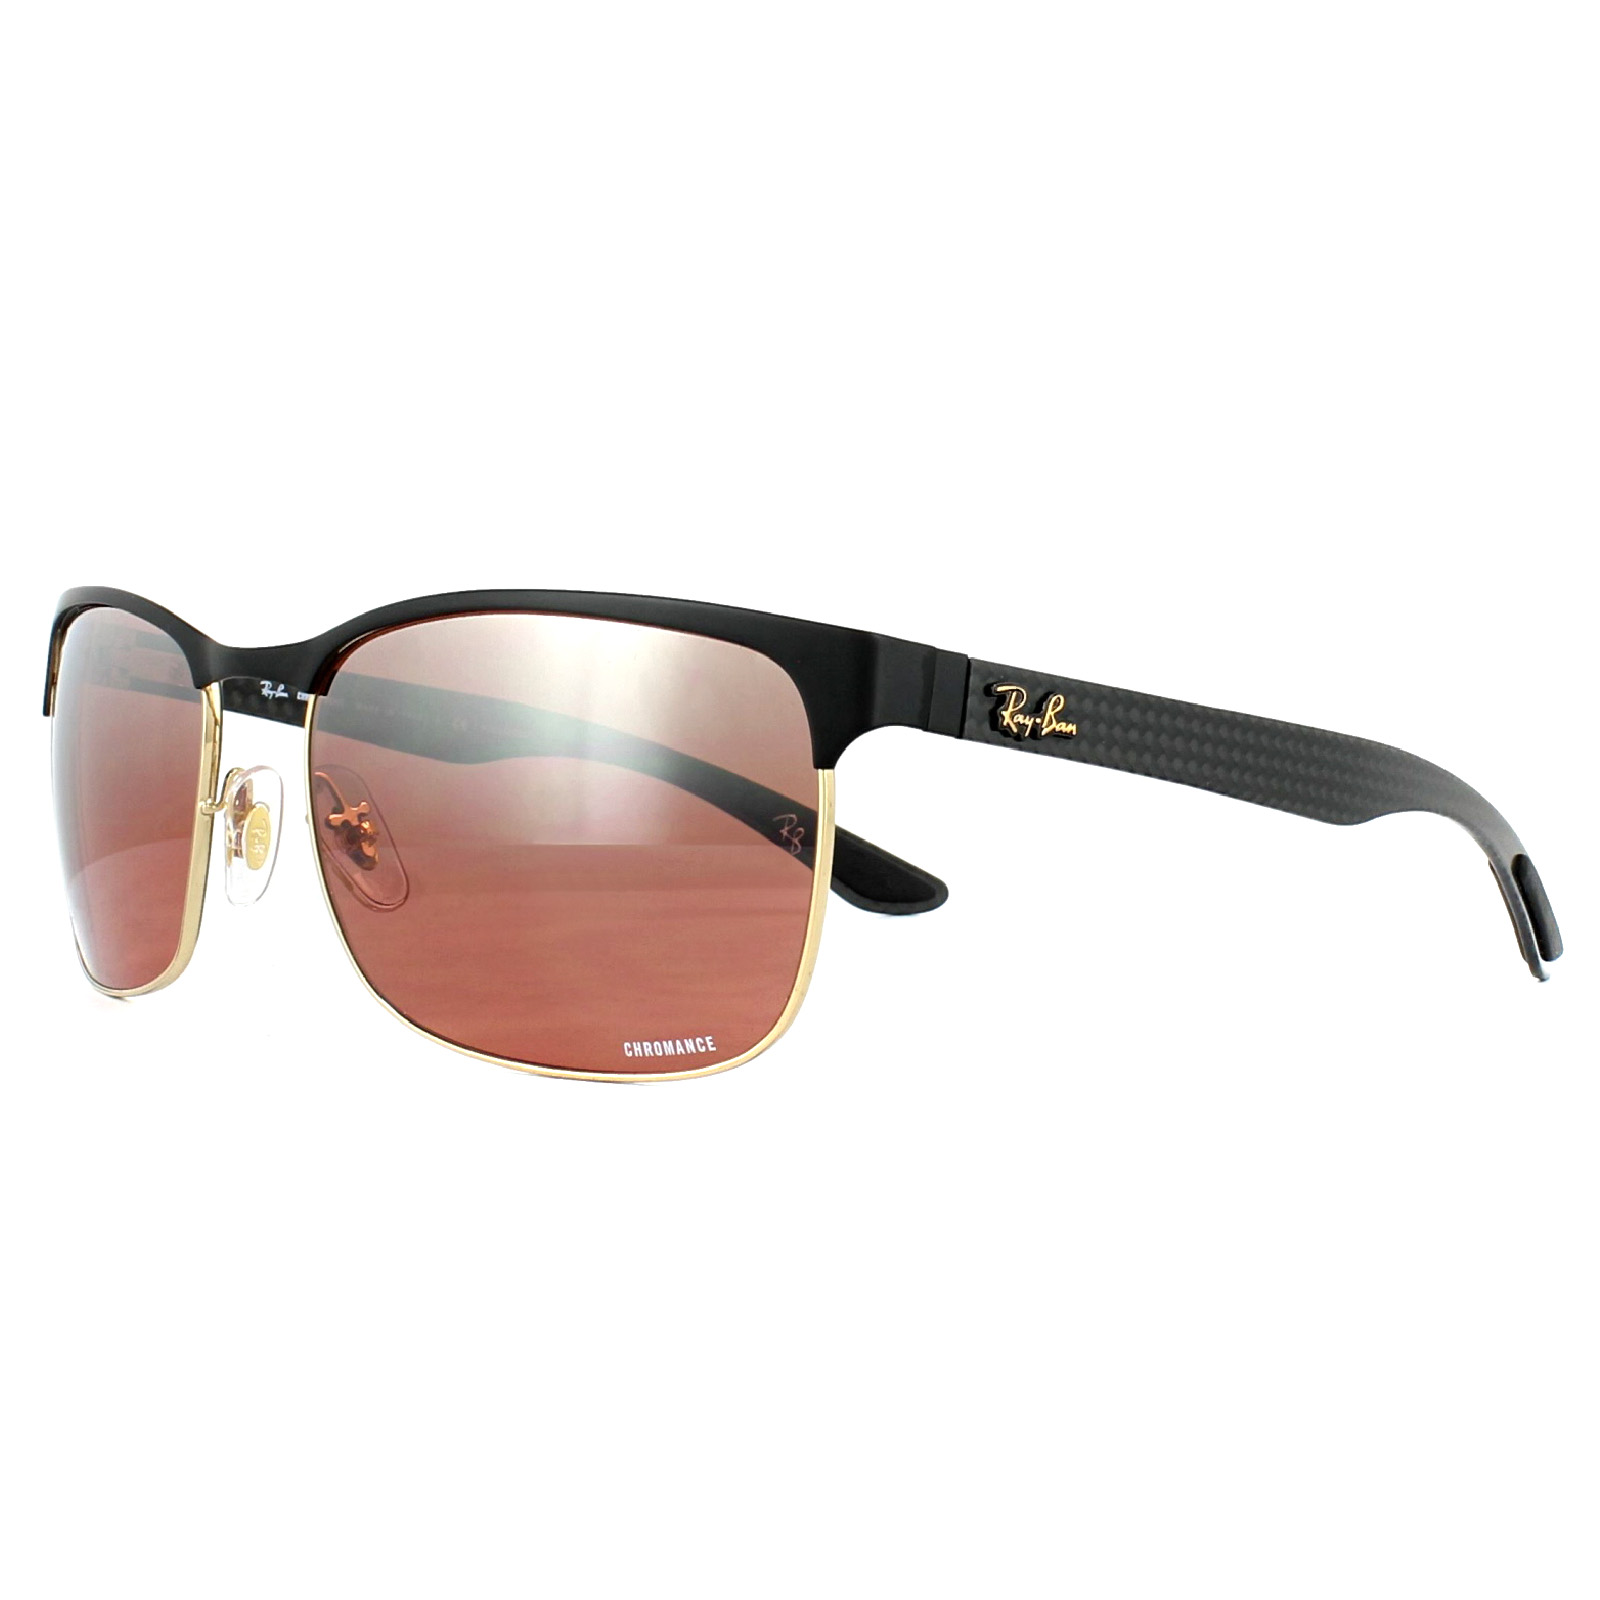 Details About Ray Ban Sunglasses Rb8319ch 9076k9 Black Gold Pink Mirror Polarized Chromance